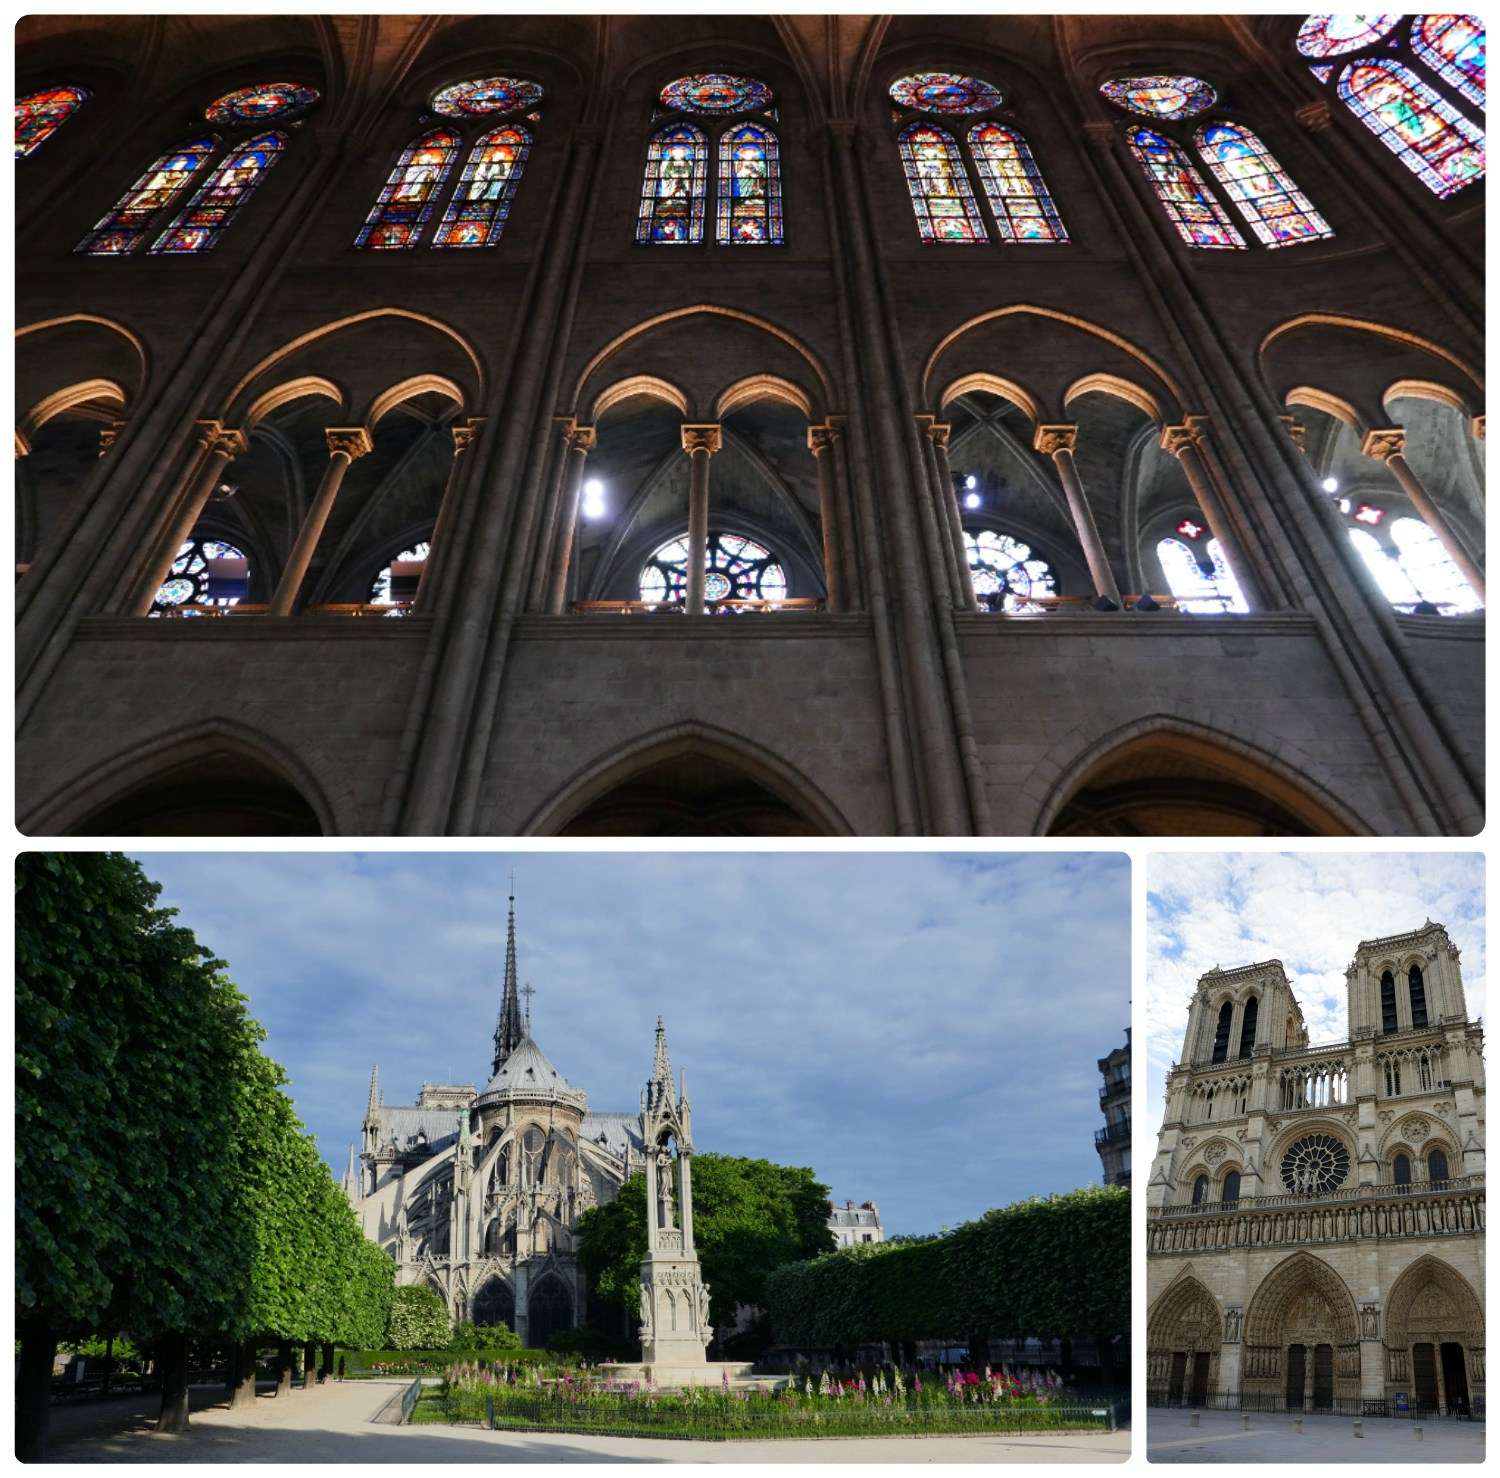 Clockwise (from the top): The magnificent archways and stained glass in Notre-Dame Cathedral that left us looking up as we moved through the church, the front exterior of the cathedral, the rear of the cathedral taken from Square Jean XXIII.